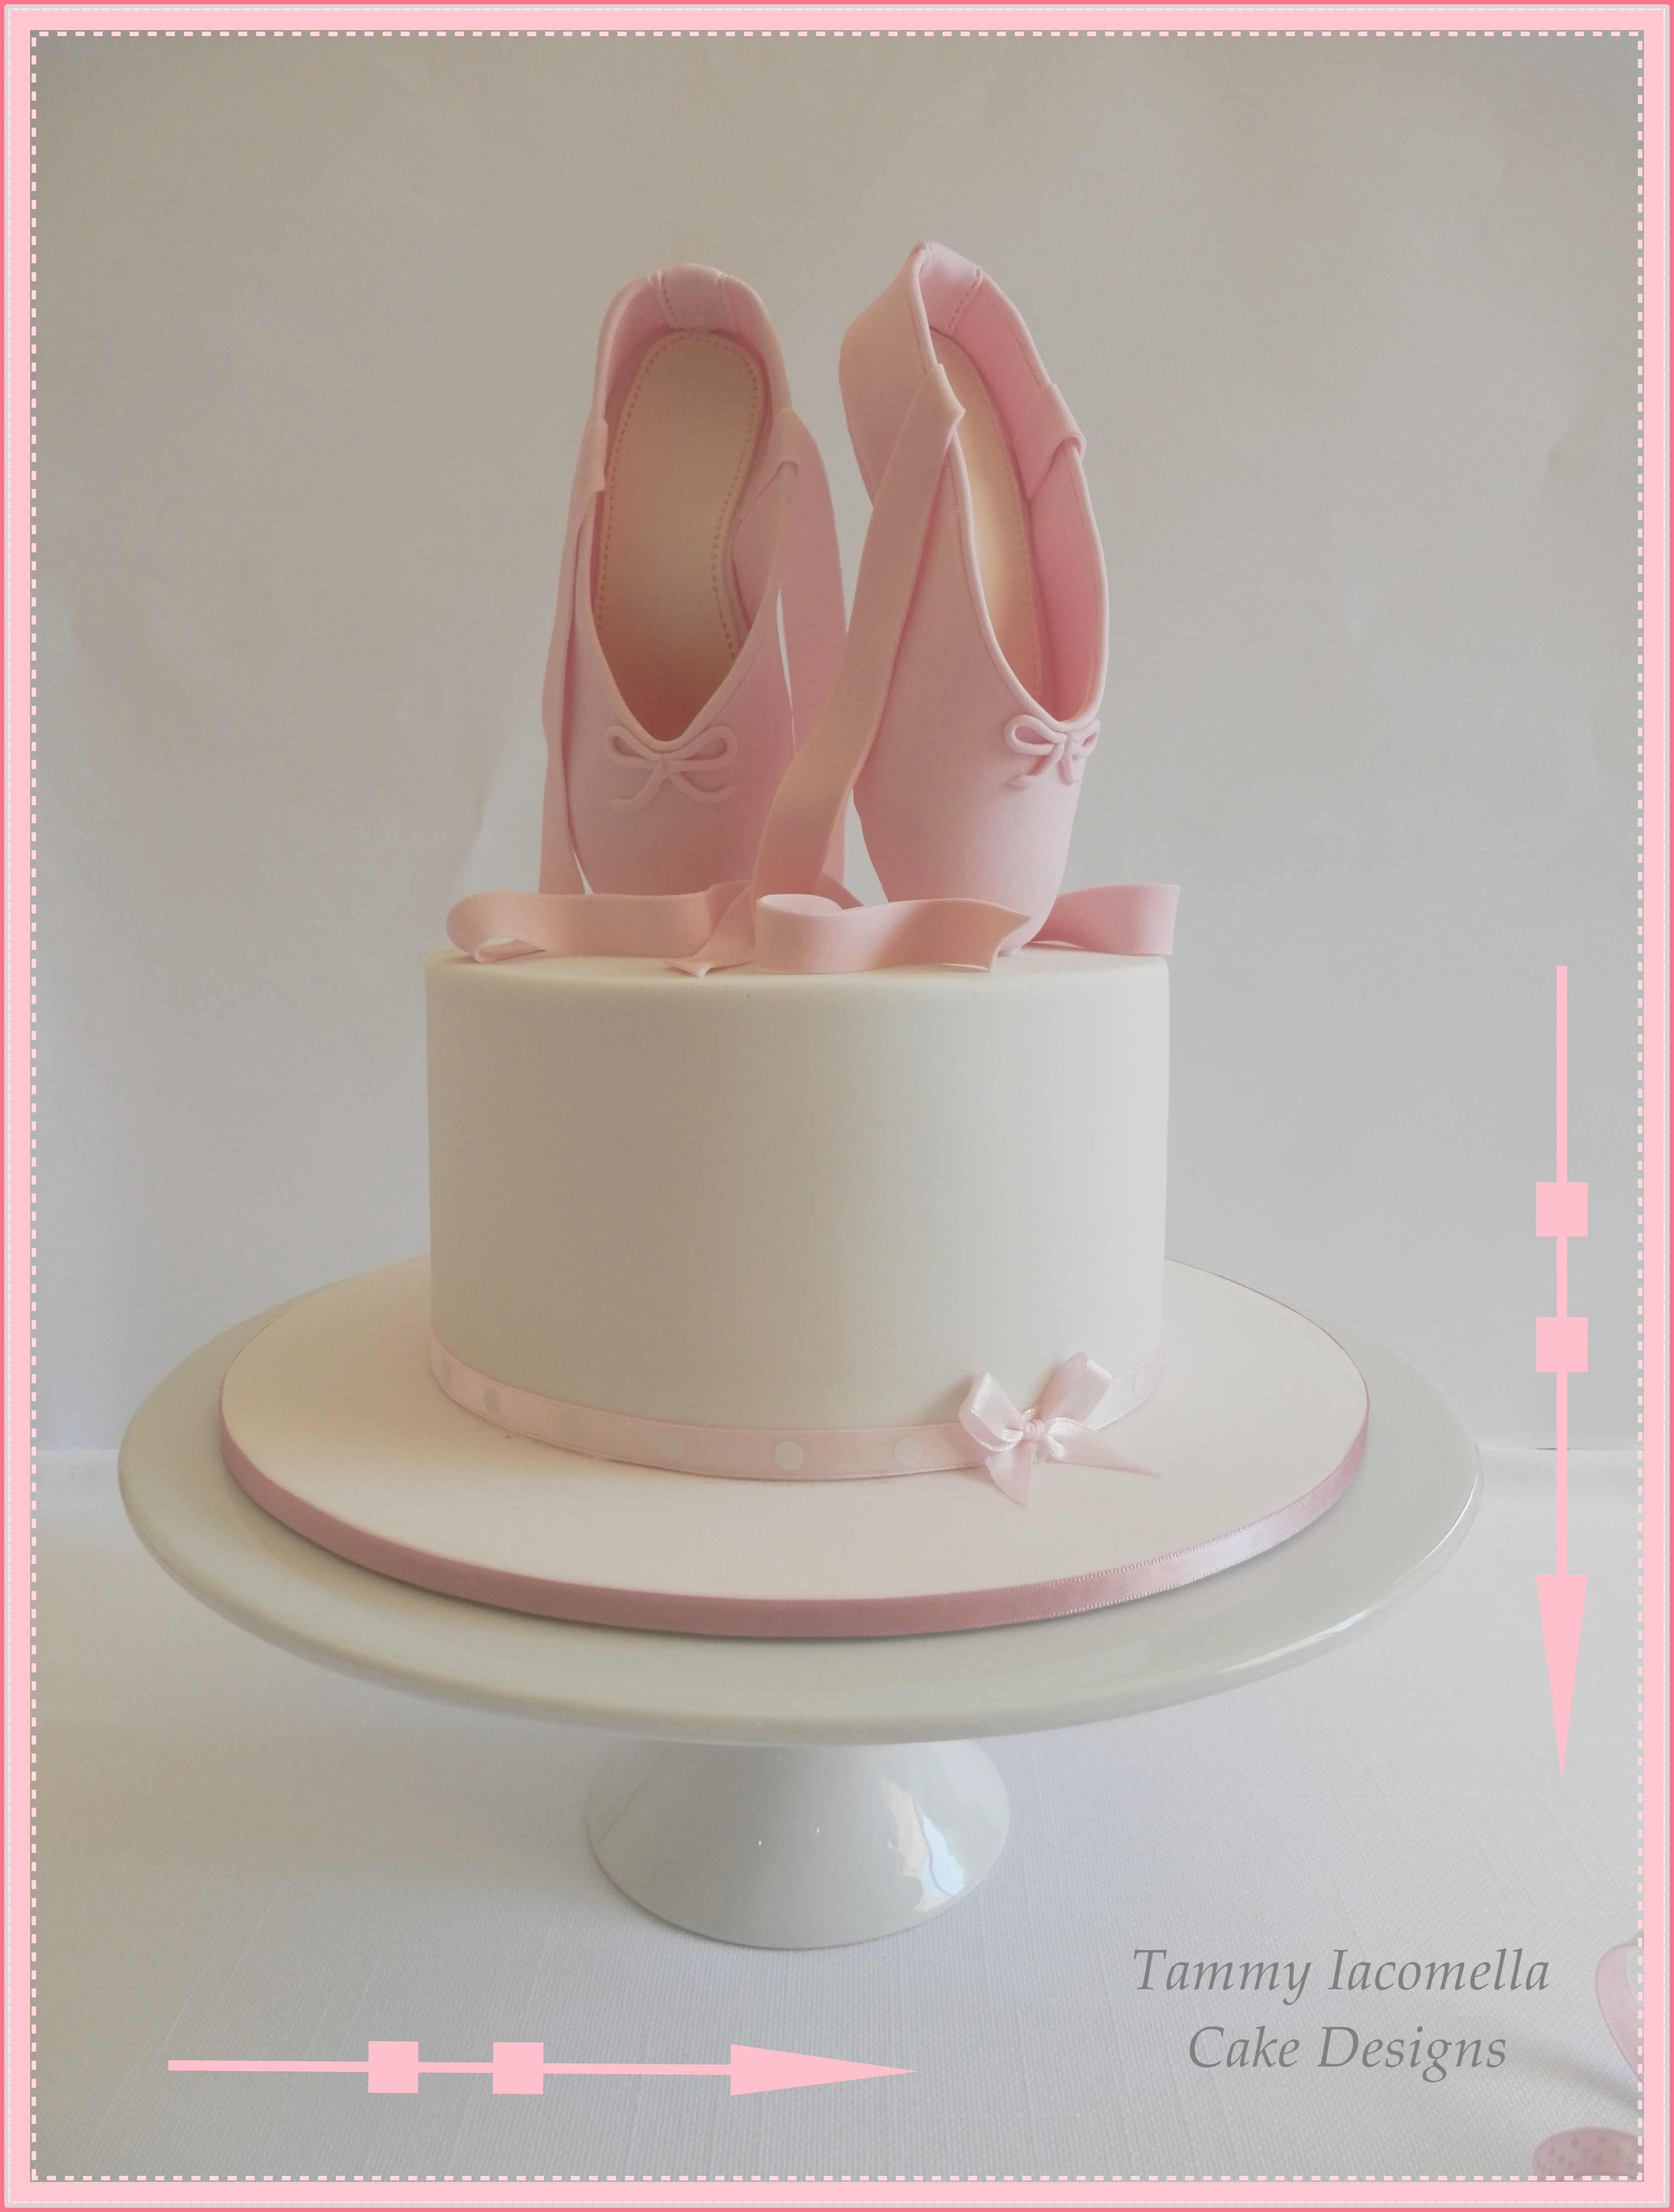 "7 Chocolate Cake With Pretty Fondant Ballet Slippers I Gave The Slippers About 4 5 Days Drying Time Before Standing Them Upright On The Ca... 7"" chocolate cake with pretty fondant ballet slippers. I gave the slippers about 4-5 days drying time before standing them upright on..."